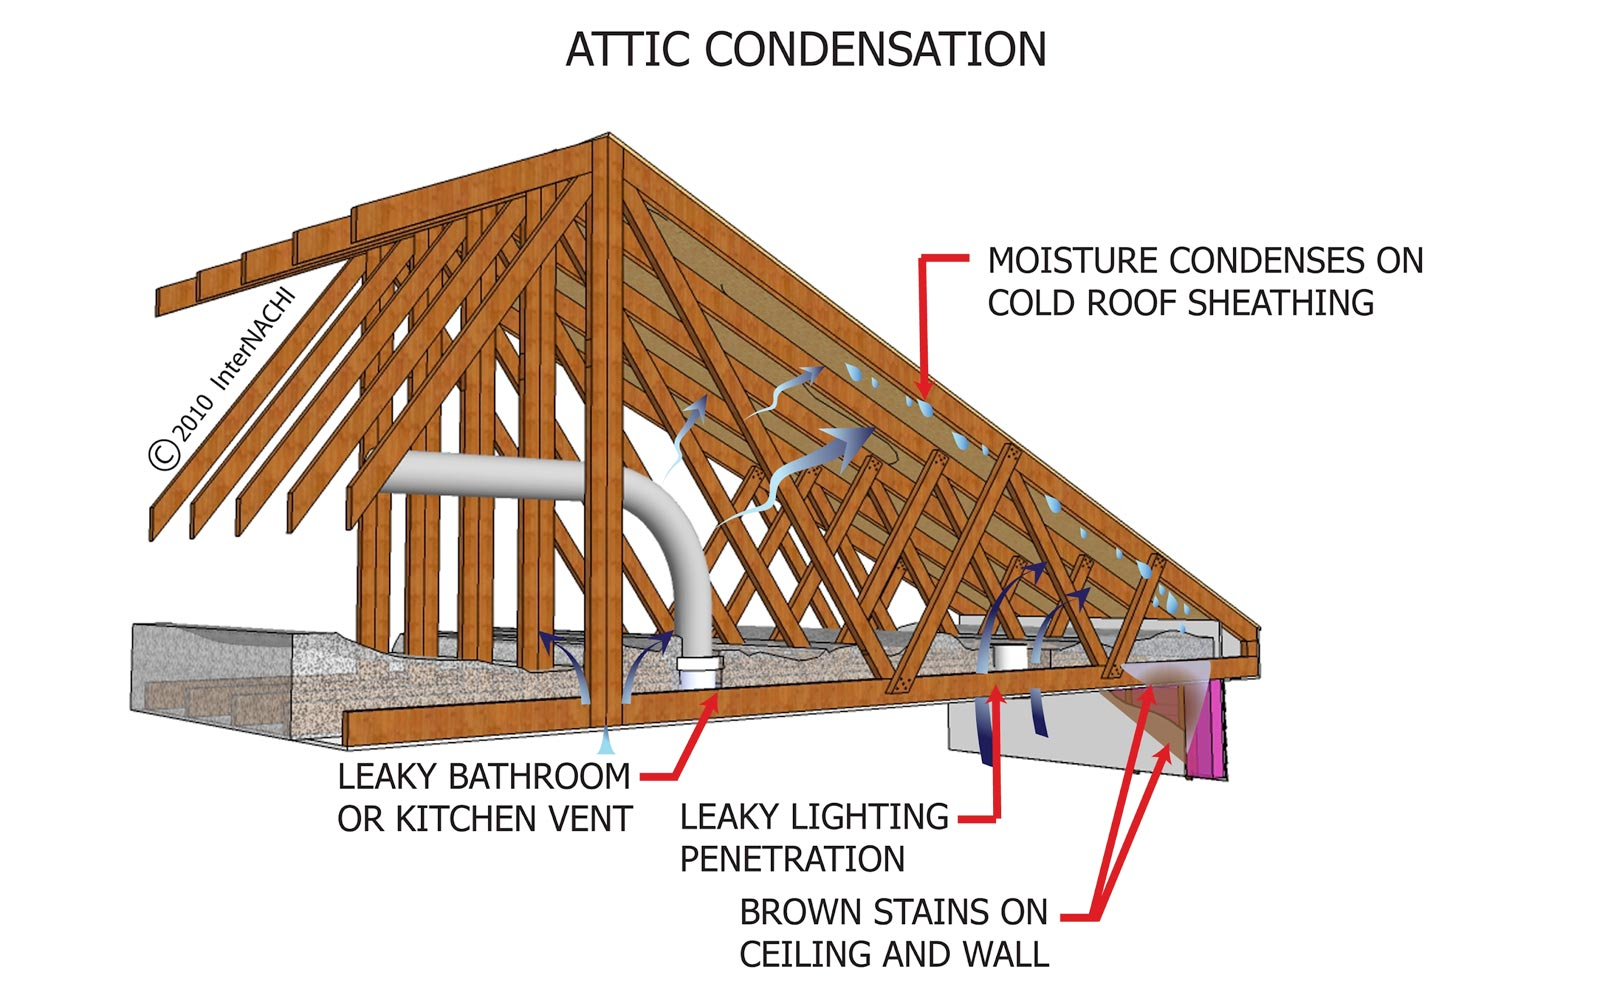 Things We Love: Fixing Roof Leaks & Attic Condensation